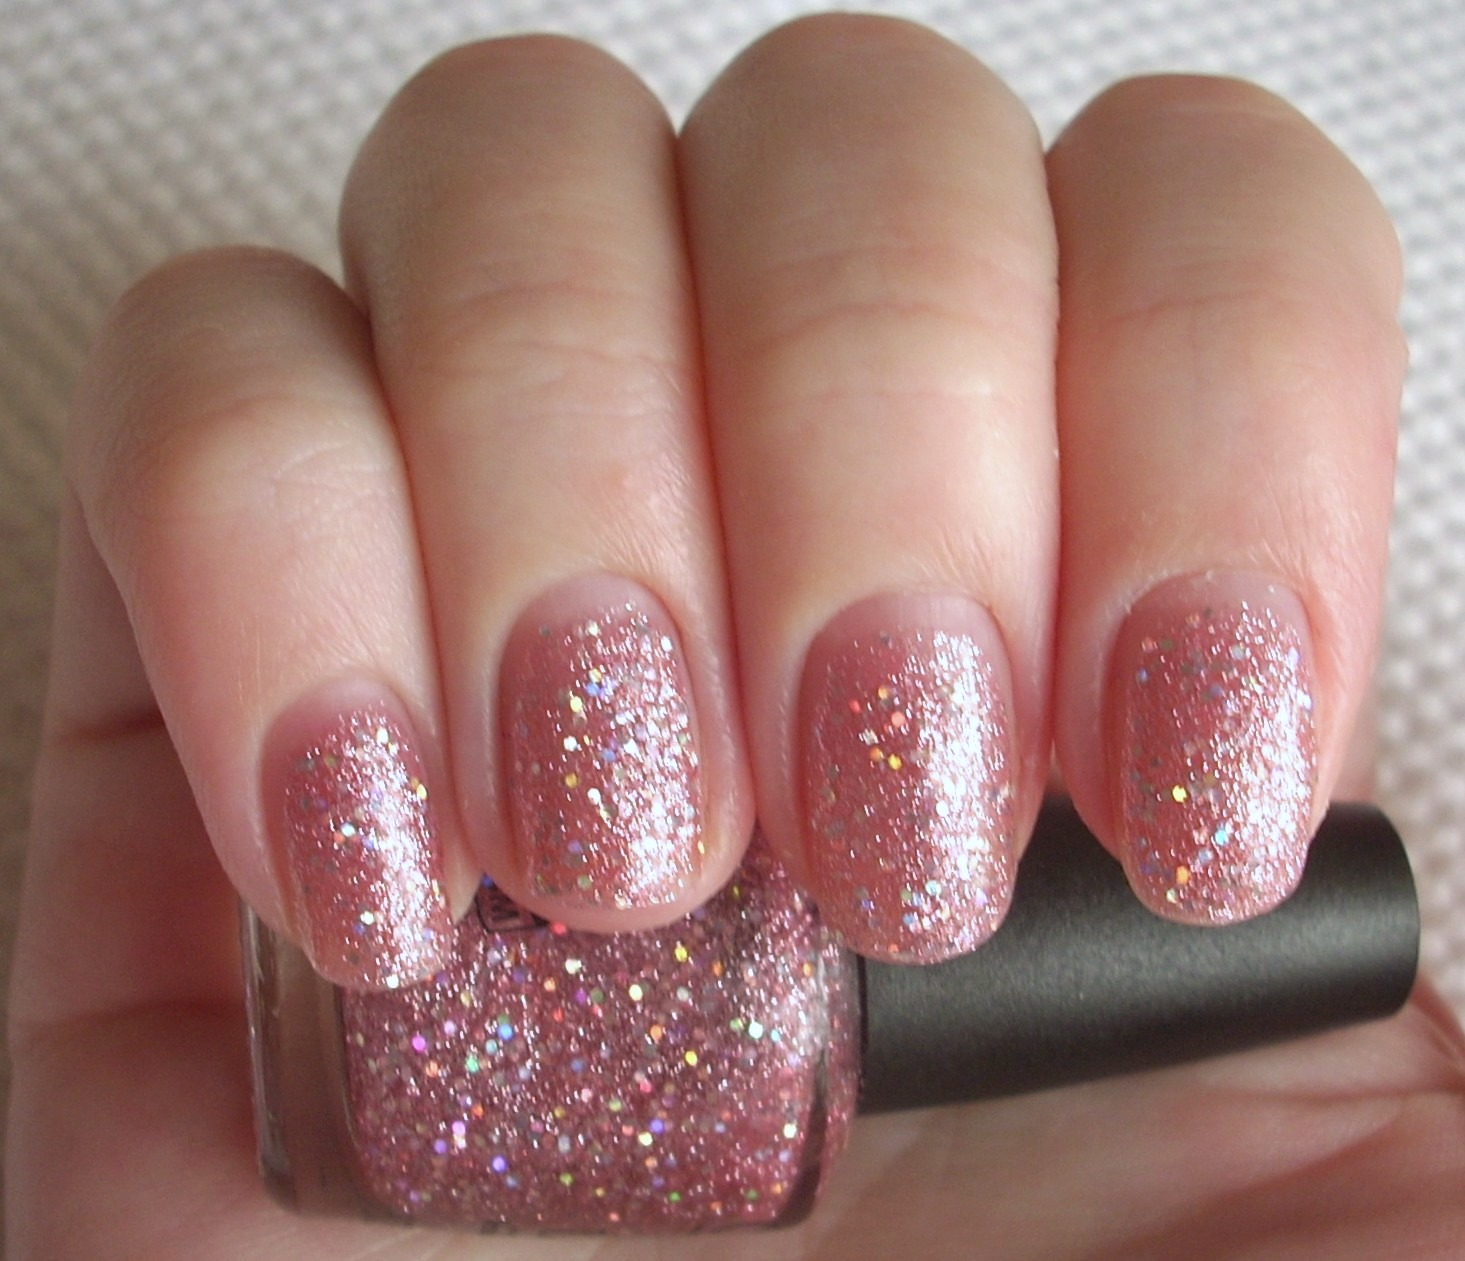 OPI Teenage Dream nail polish review | Through The Looking Glass